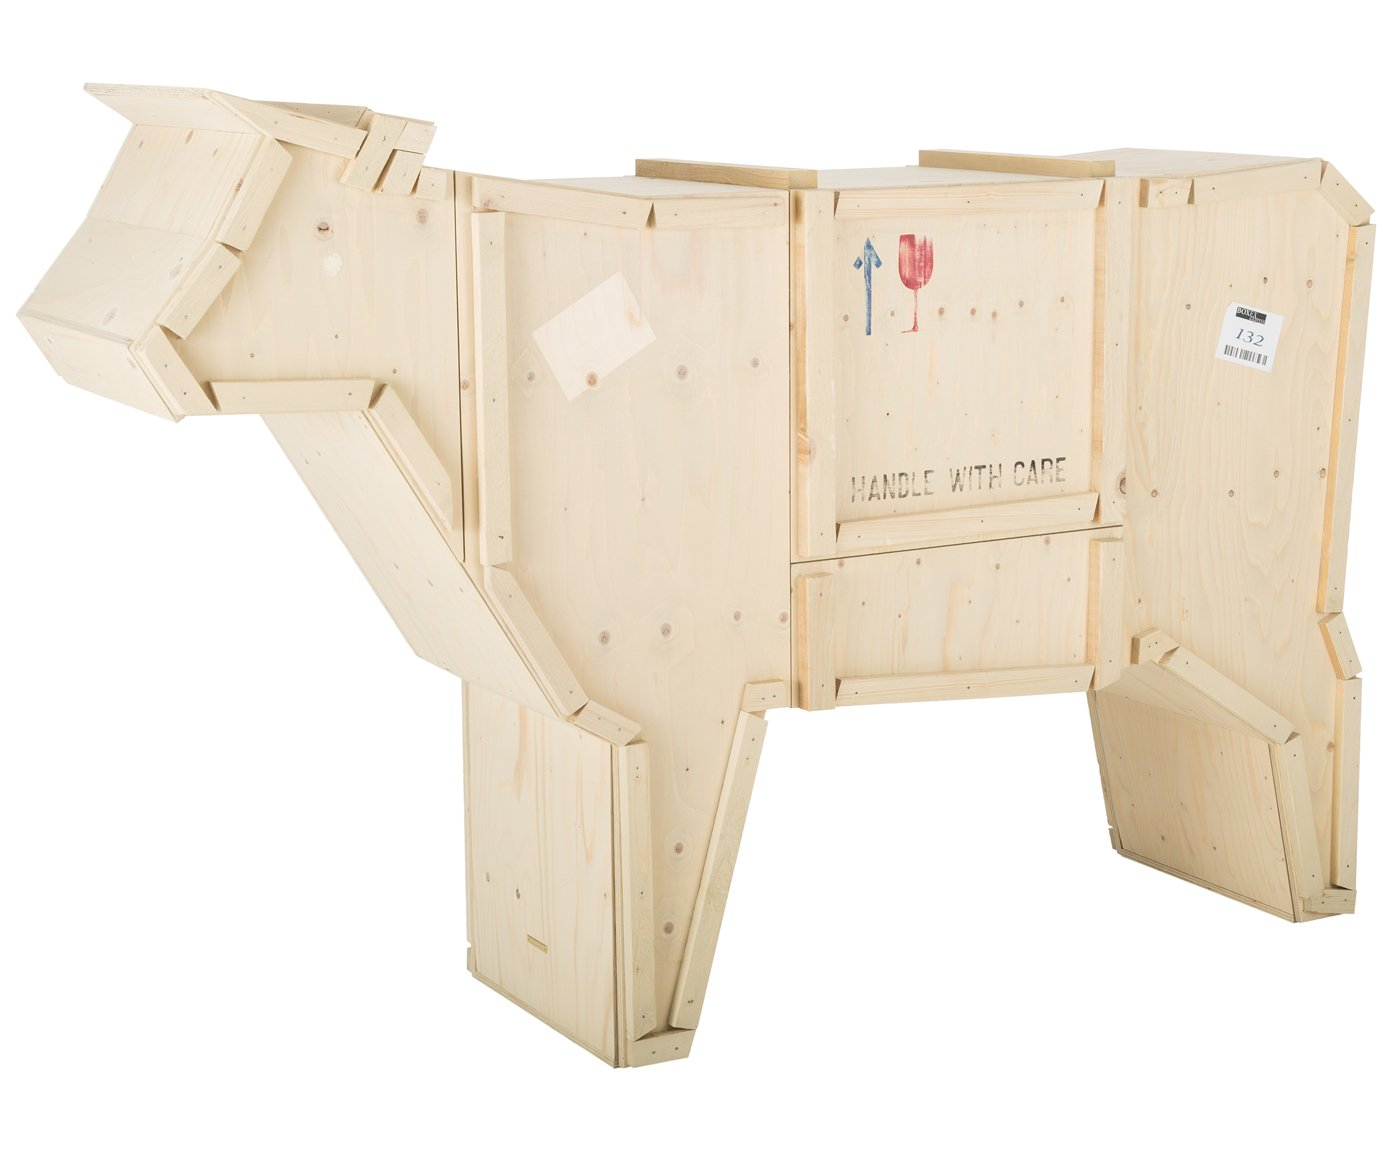 Seletti sending animals wooden furniture cm 225x58 h 151 cow wood natural beech 225x58x151 cm amazon co uk kitchen home